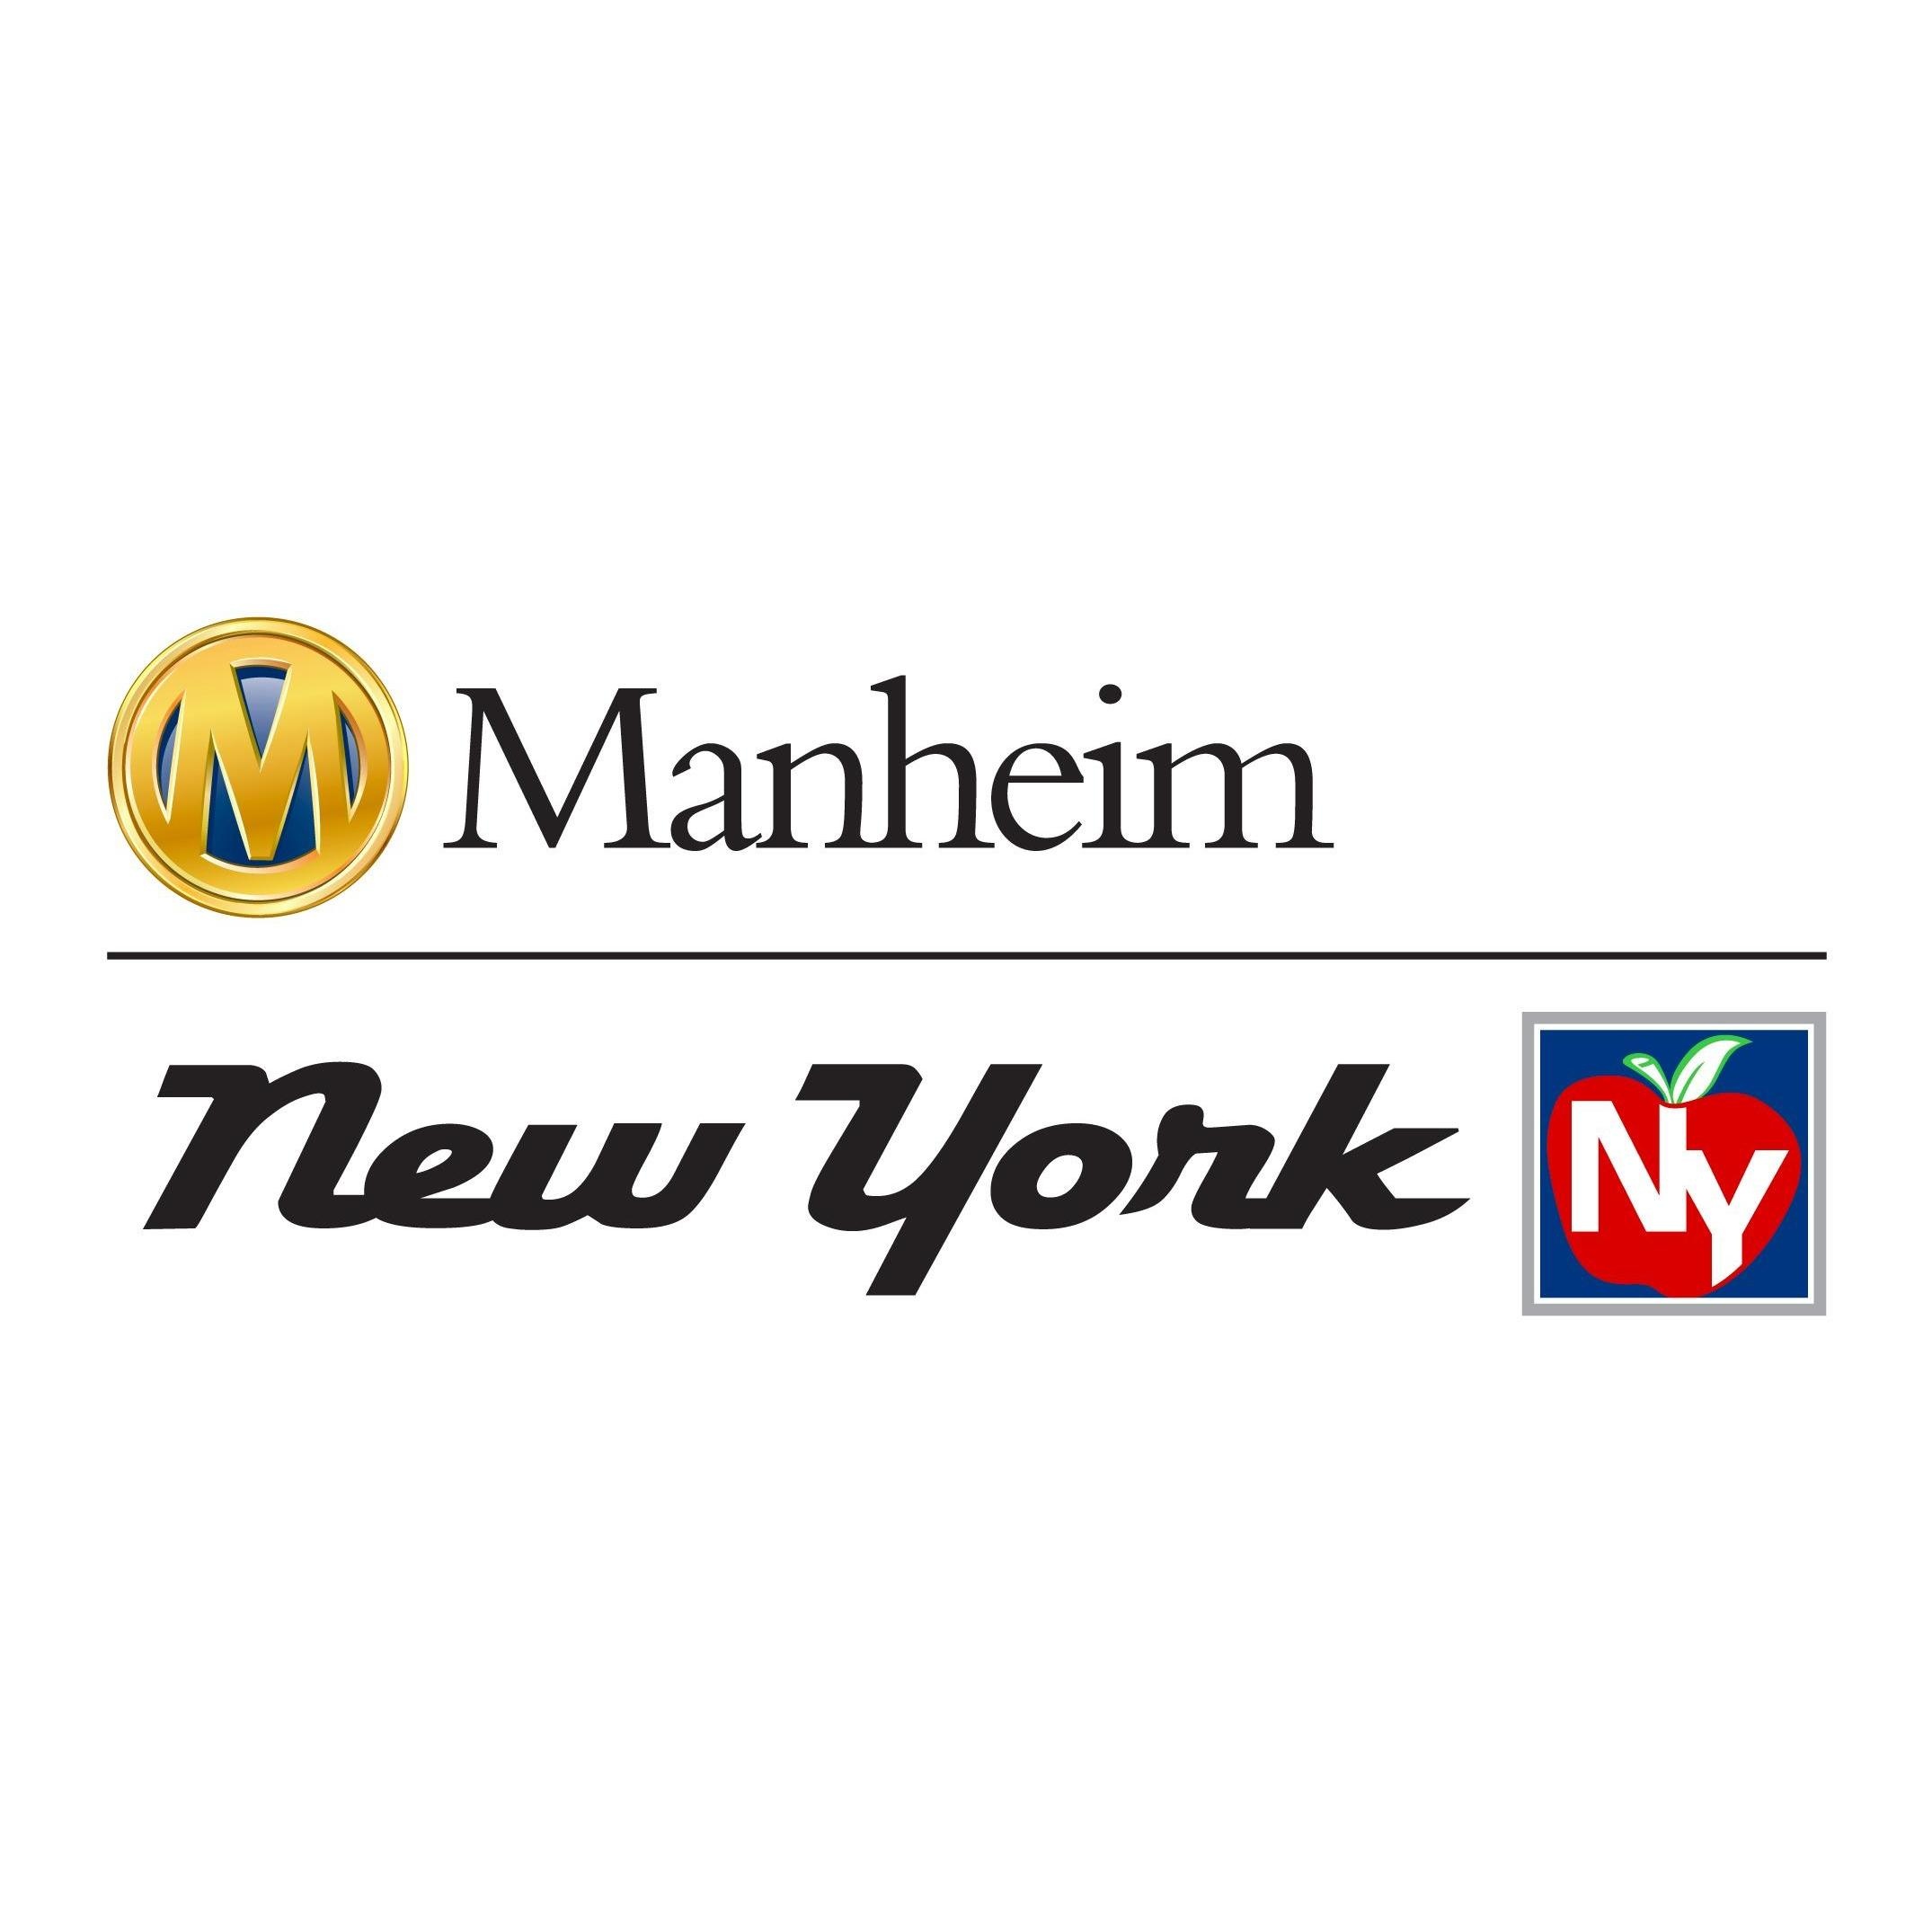 Manheim New York